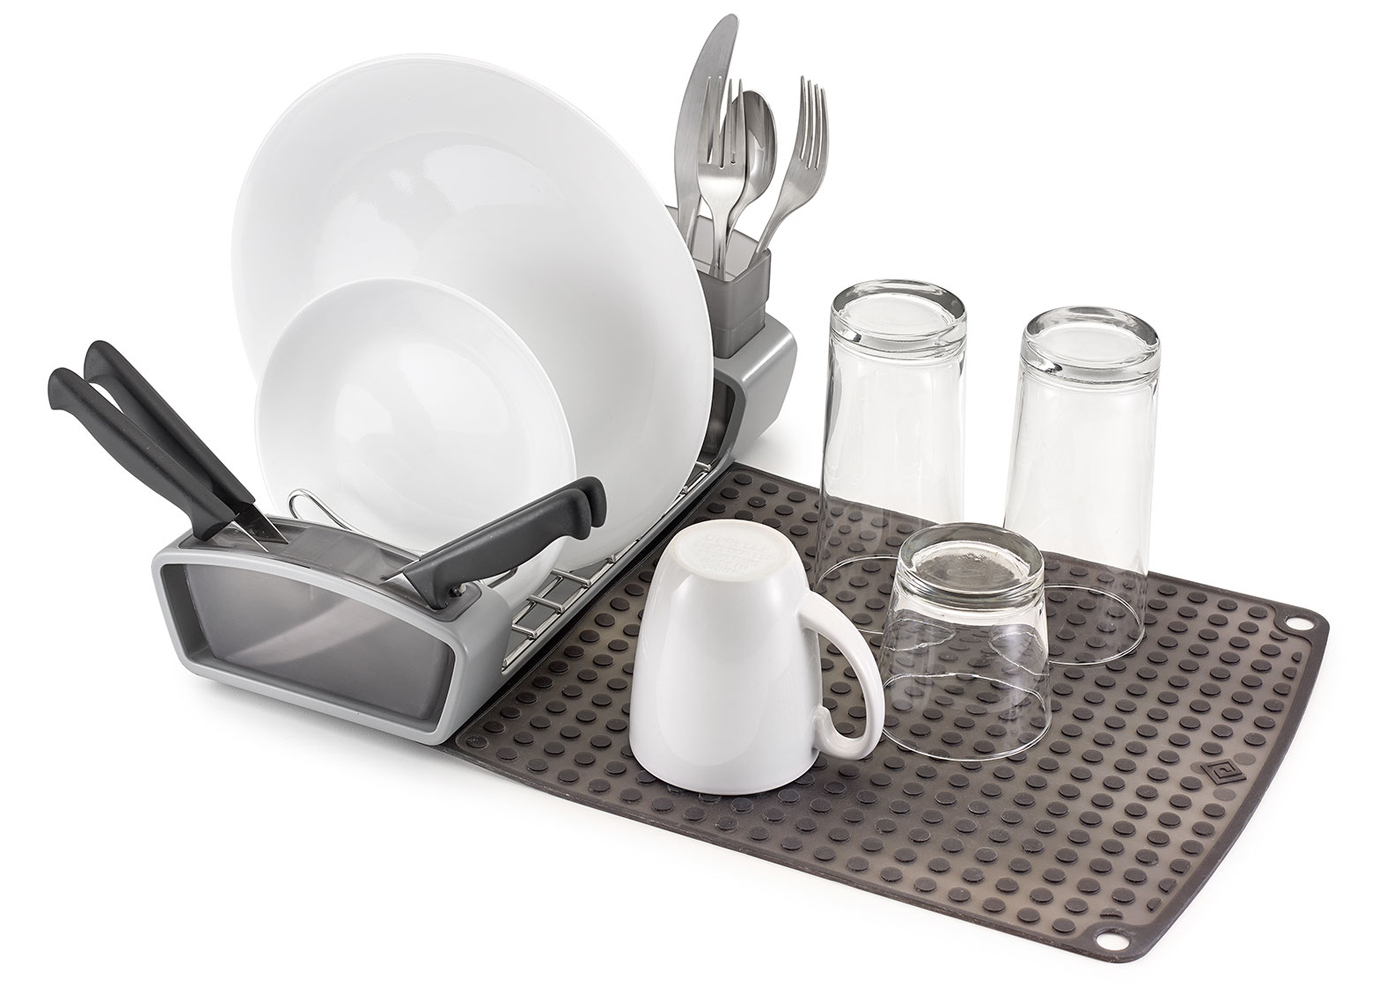 POLDER_Dishrack_Collapsible_03.jpg